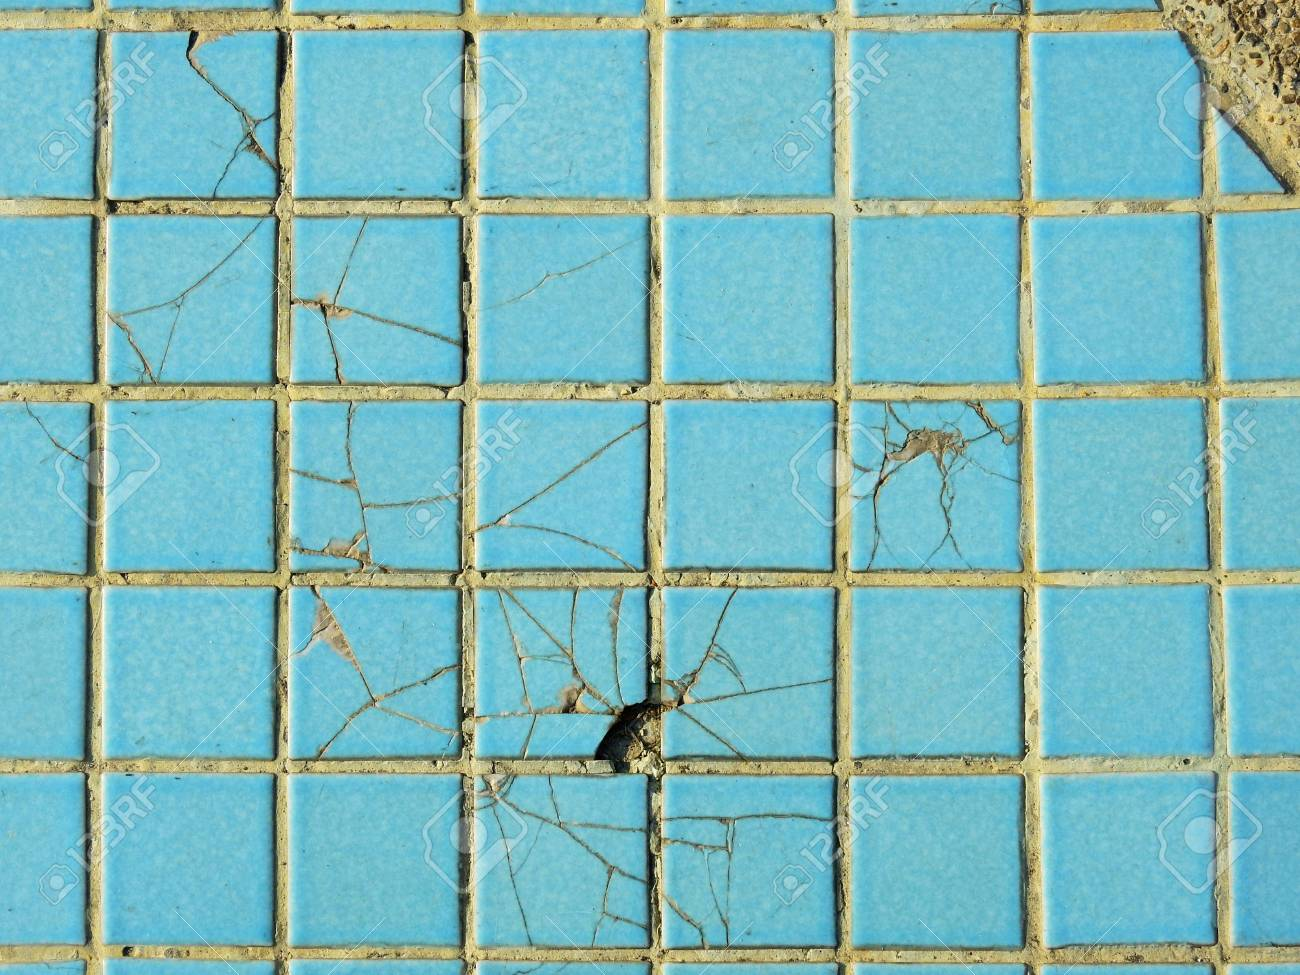 old blue ceramic tile floor with crack texture